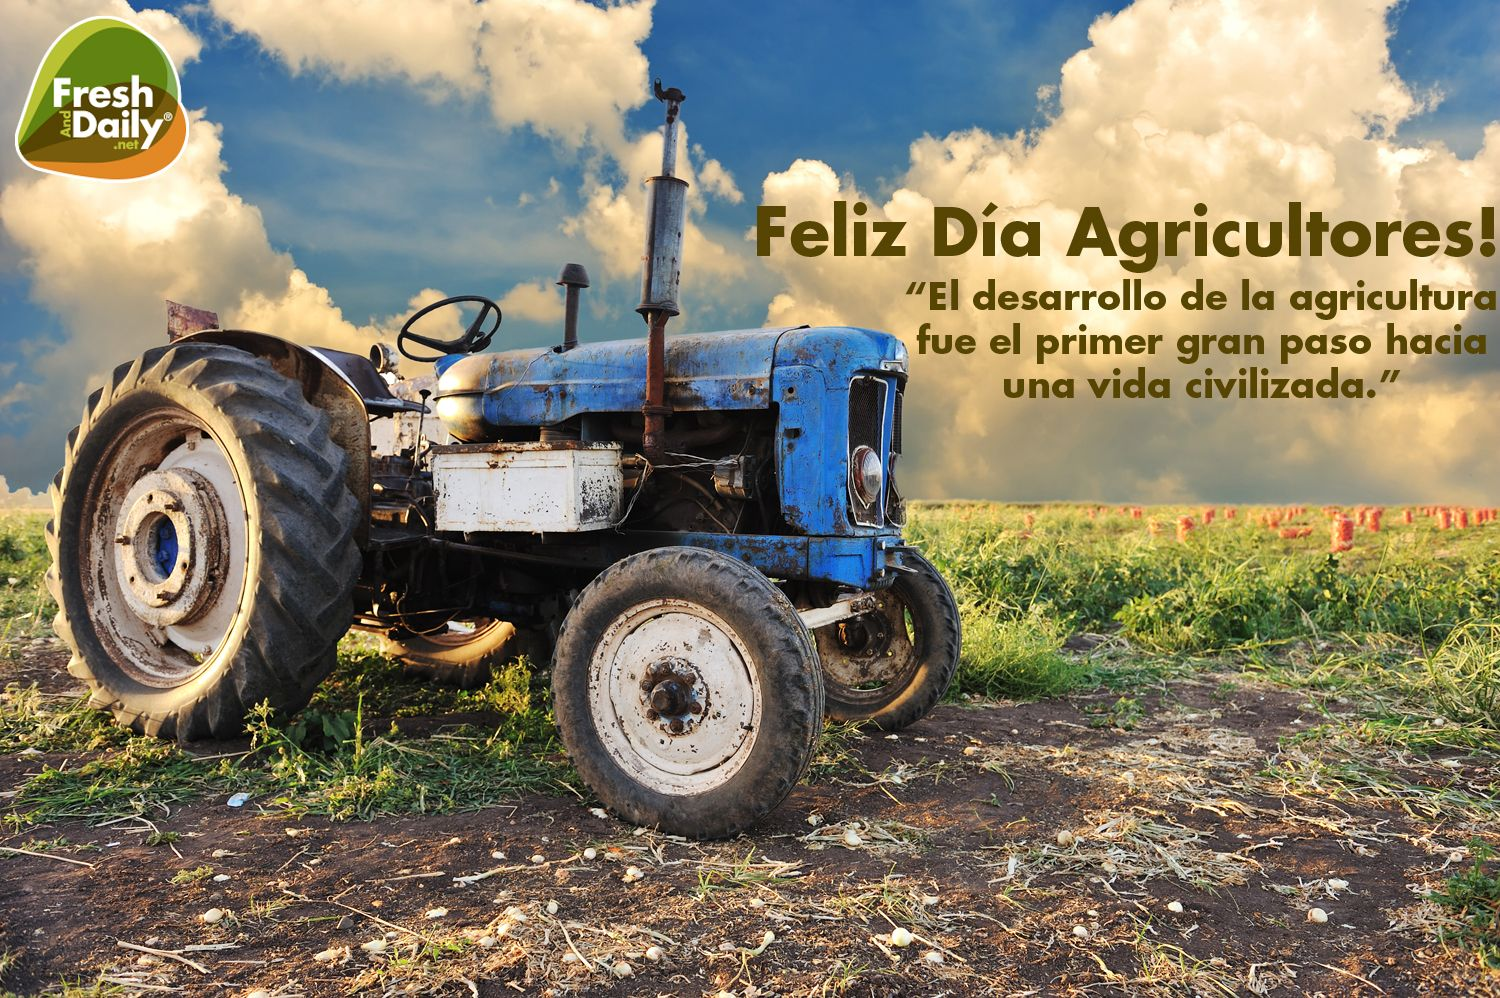 15 De Mayo Día Del Agricultor En Costa Rica Felicidades Tractor Photography Tractors Fun Wedding Photography